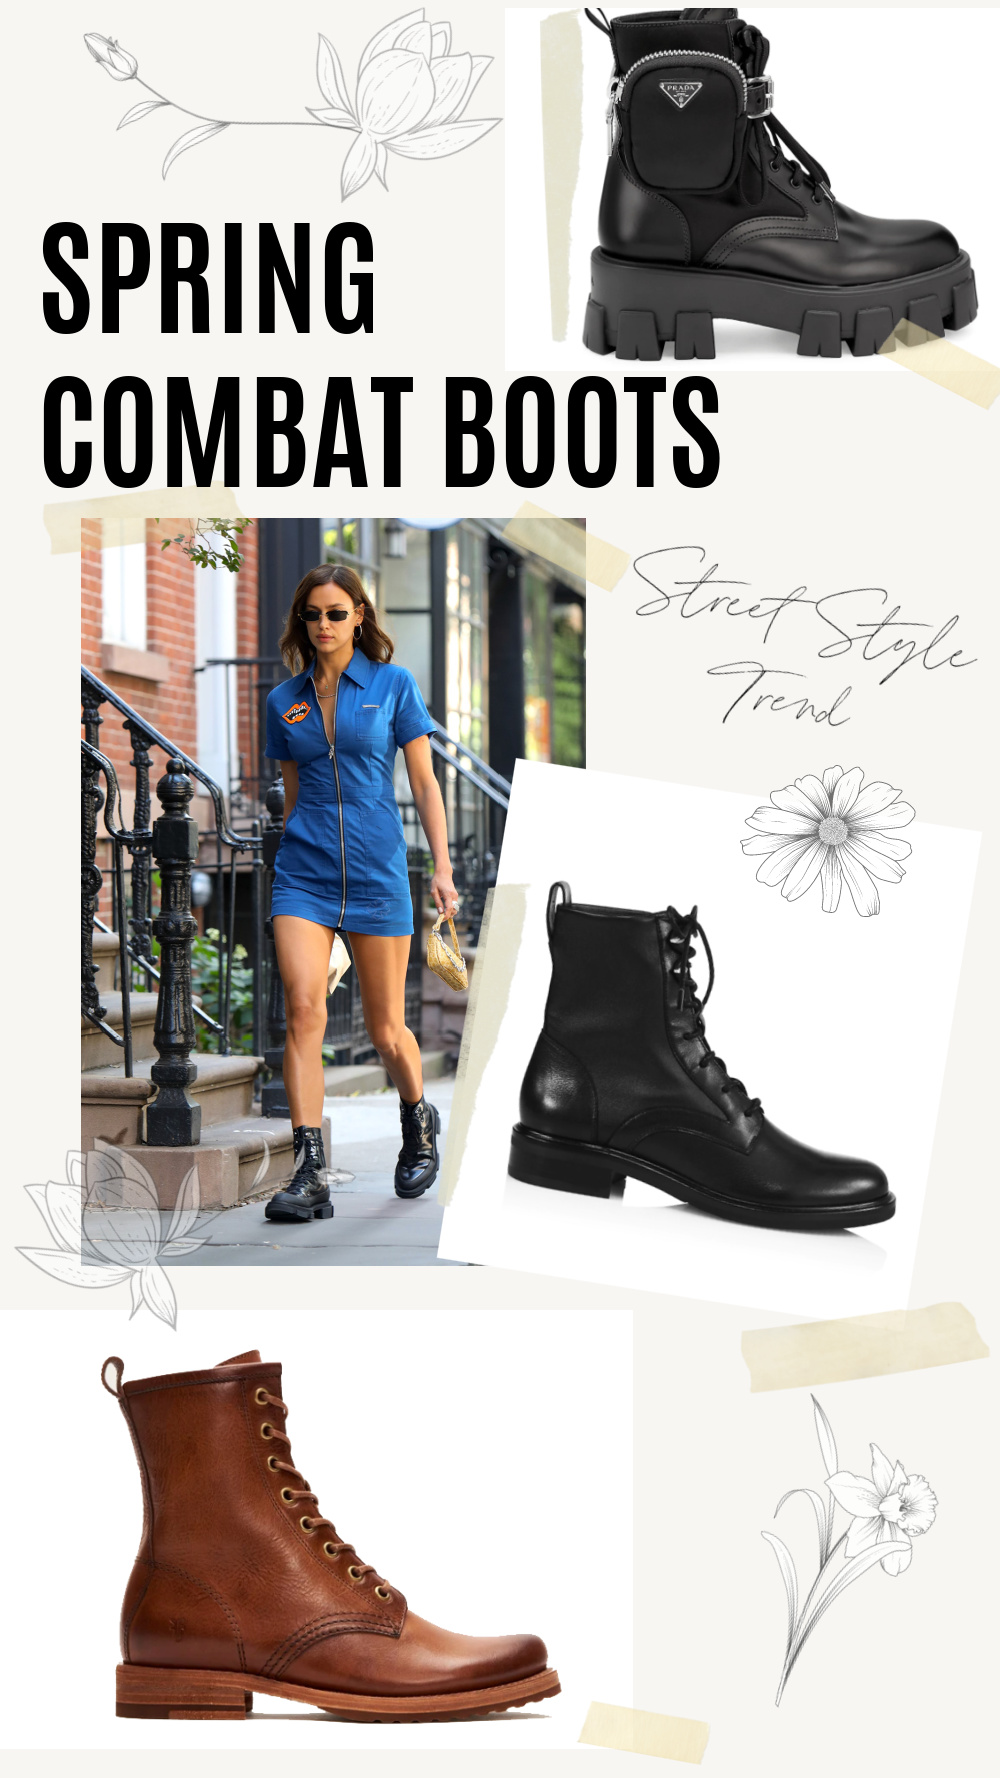 Spring Combat Boots for 2021 I DreaminLace.com #springstyle #prada #fashionstyle #streetstyle